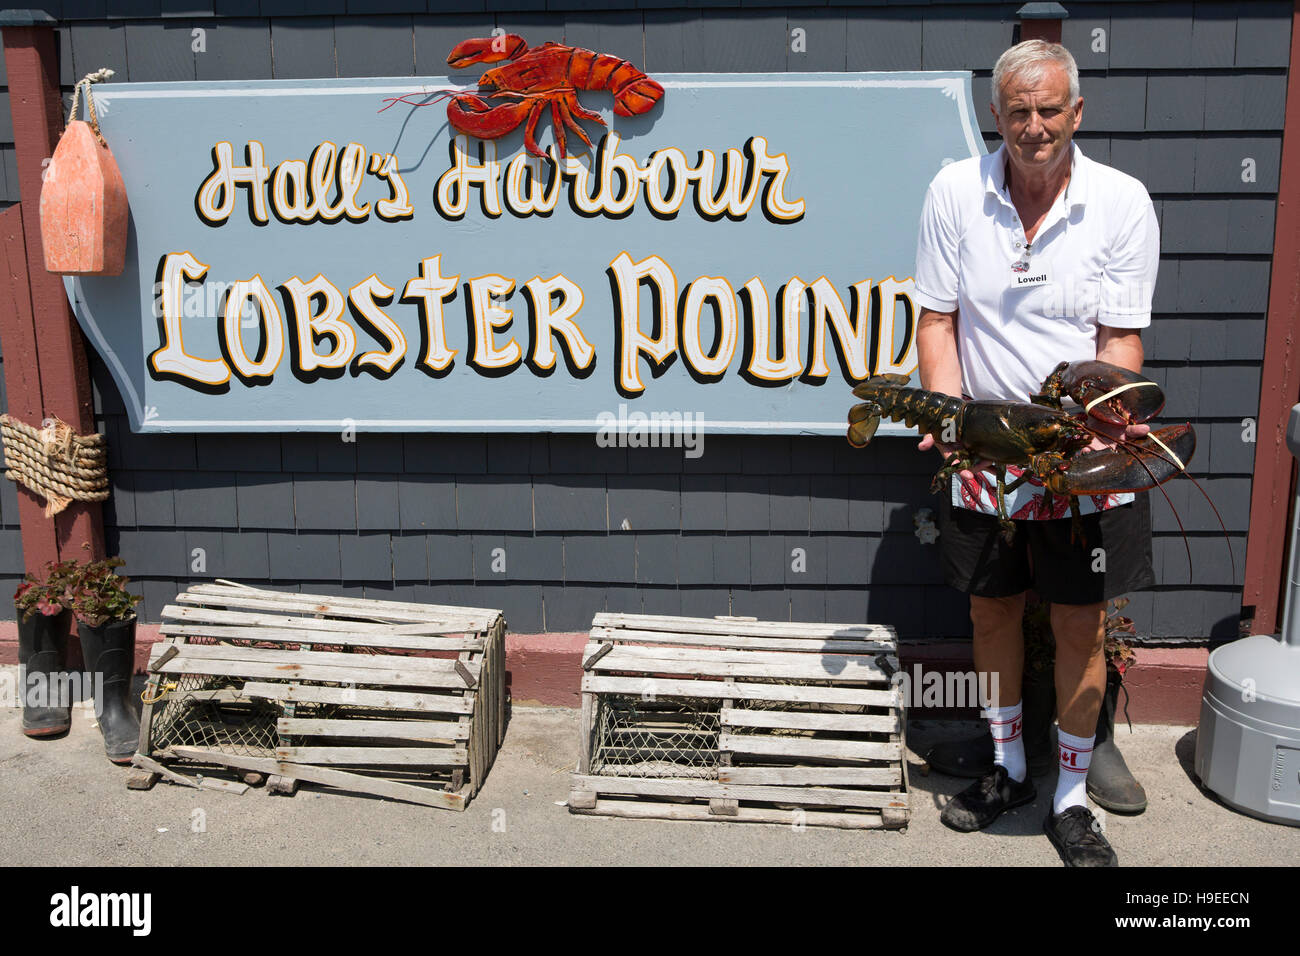 A lobster at Halls Harbour Lobster Pound in Nova Scotia, Canada Stock Photo: 126323141 - Alamy